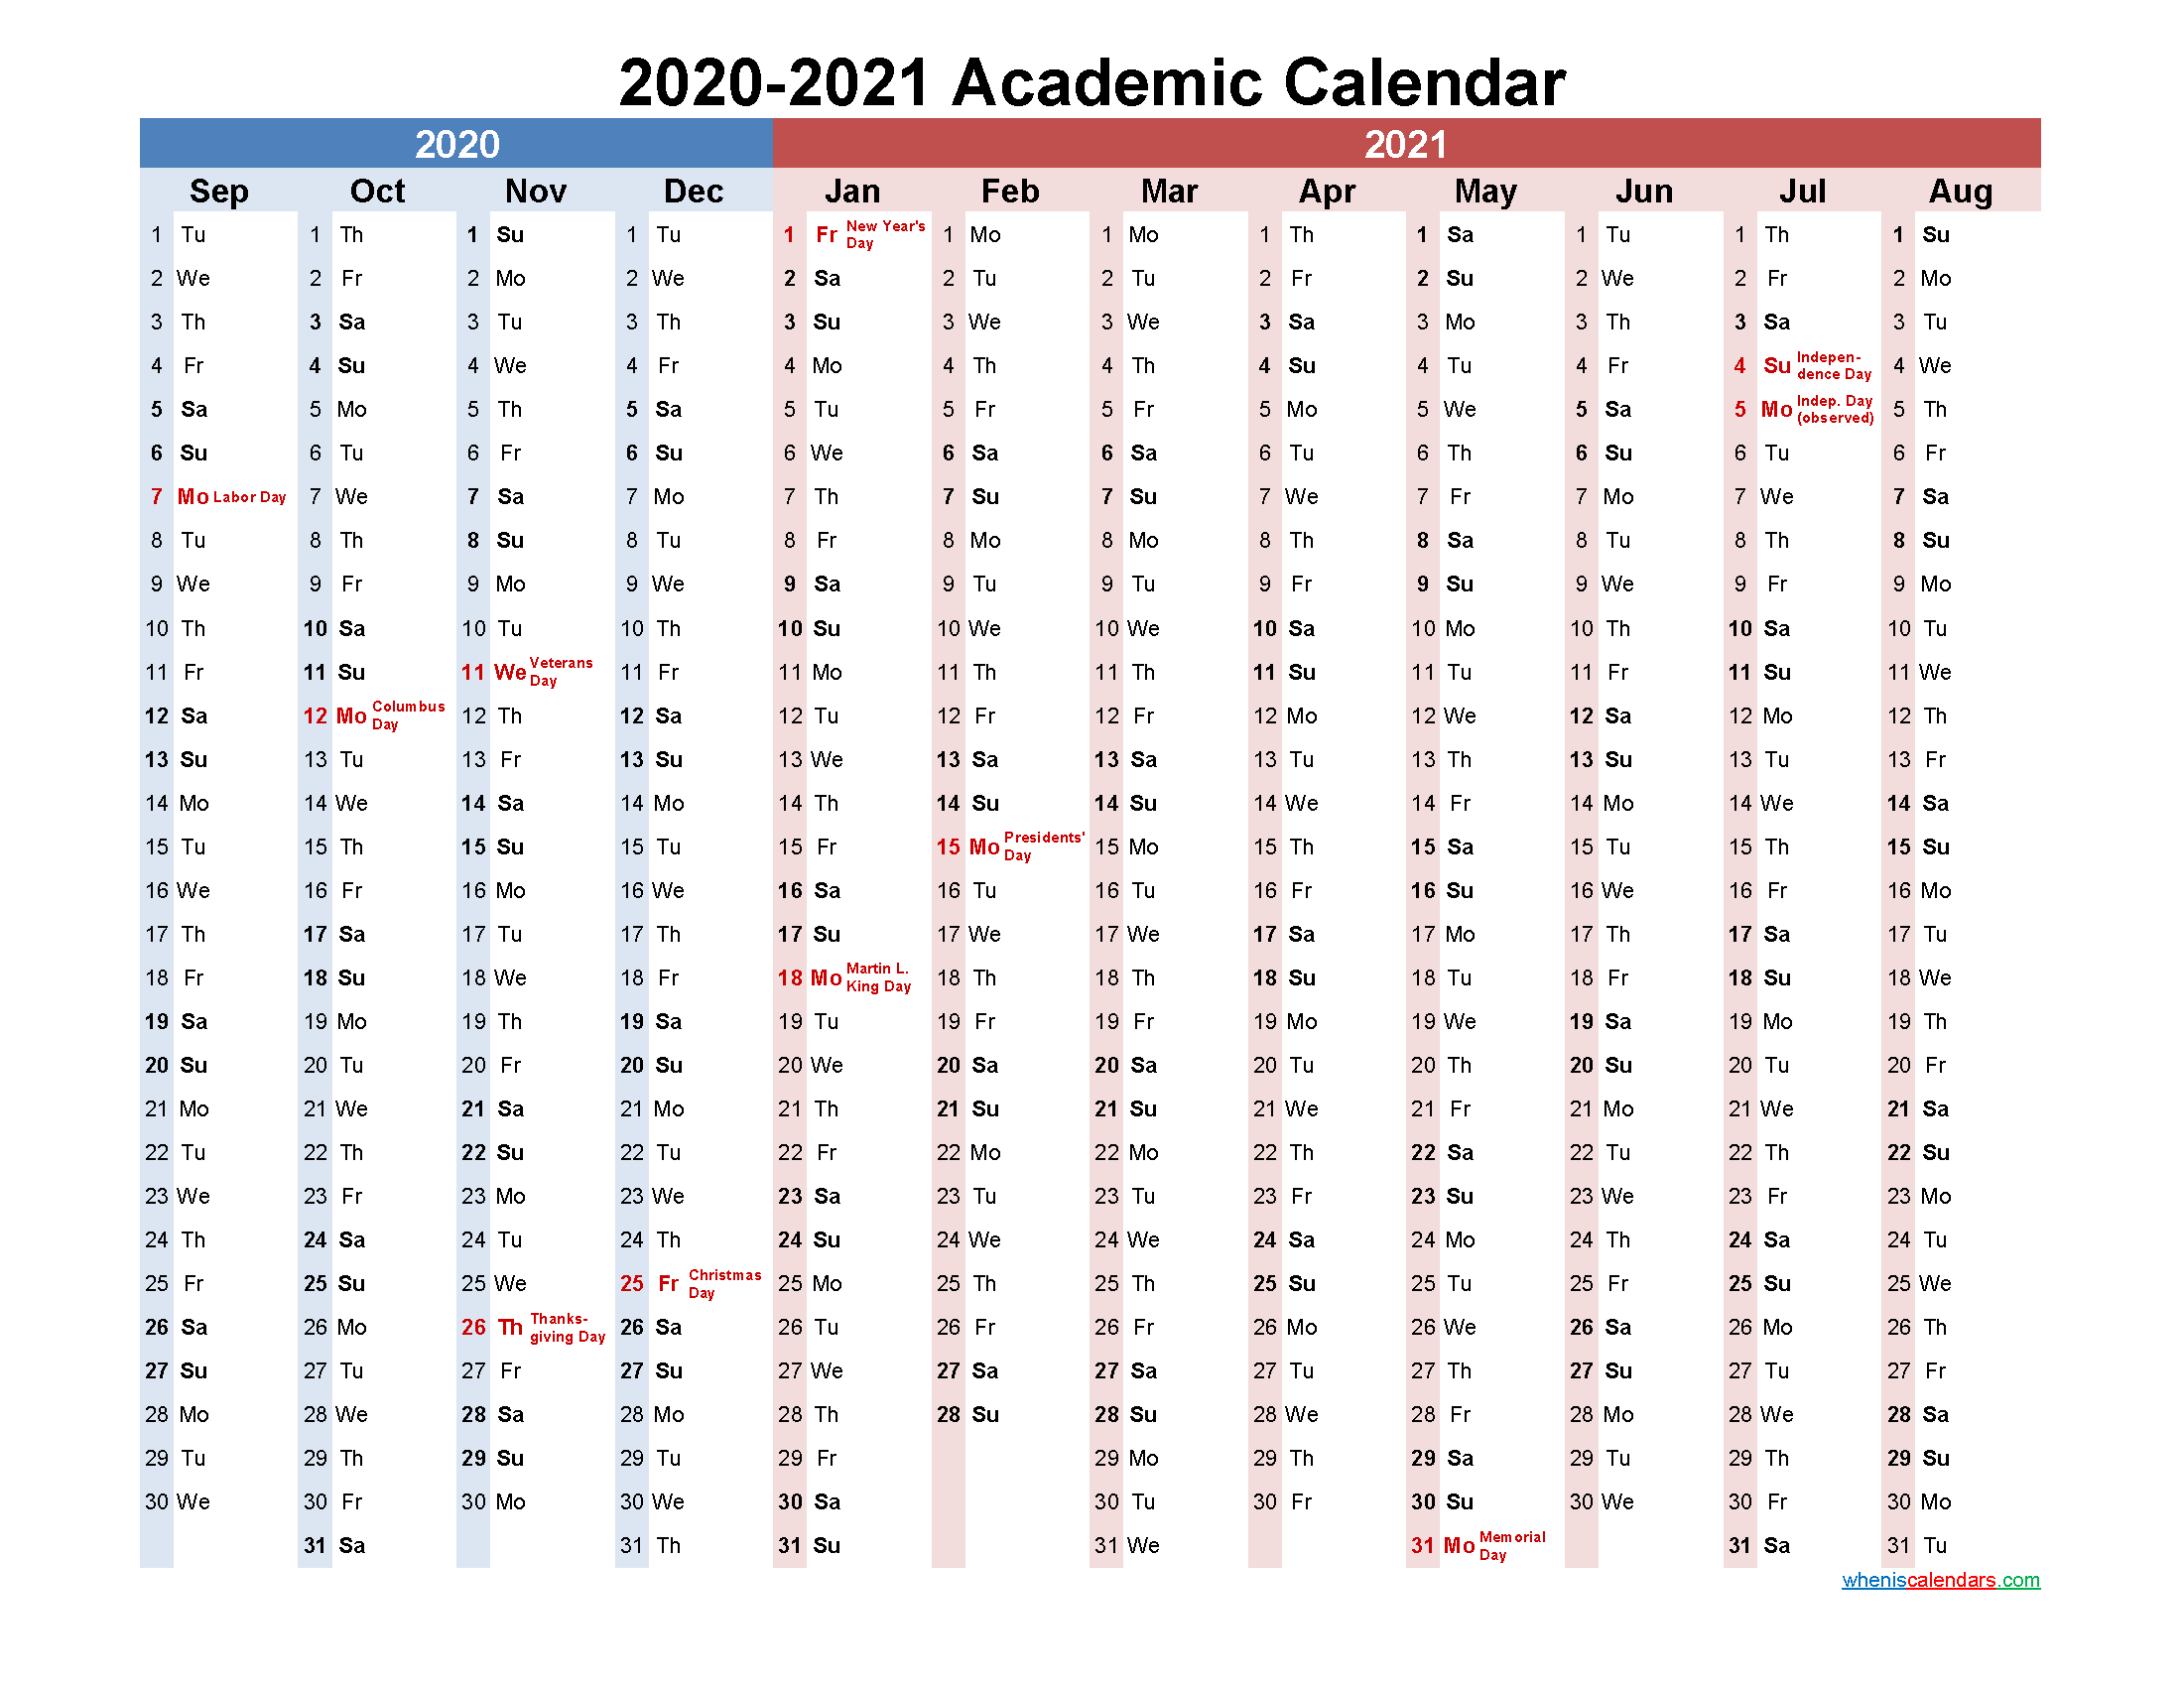 Academic Calendar 2020 and 2021 Printable